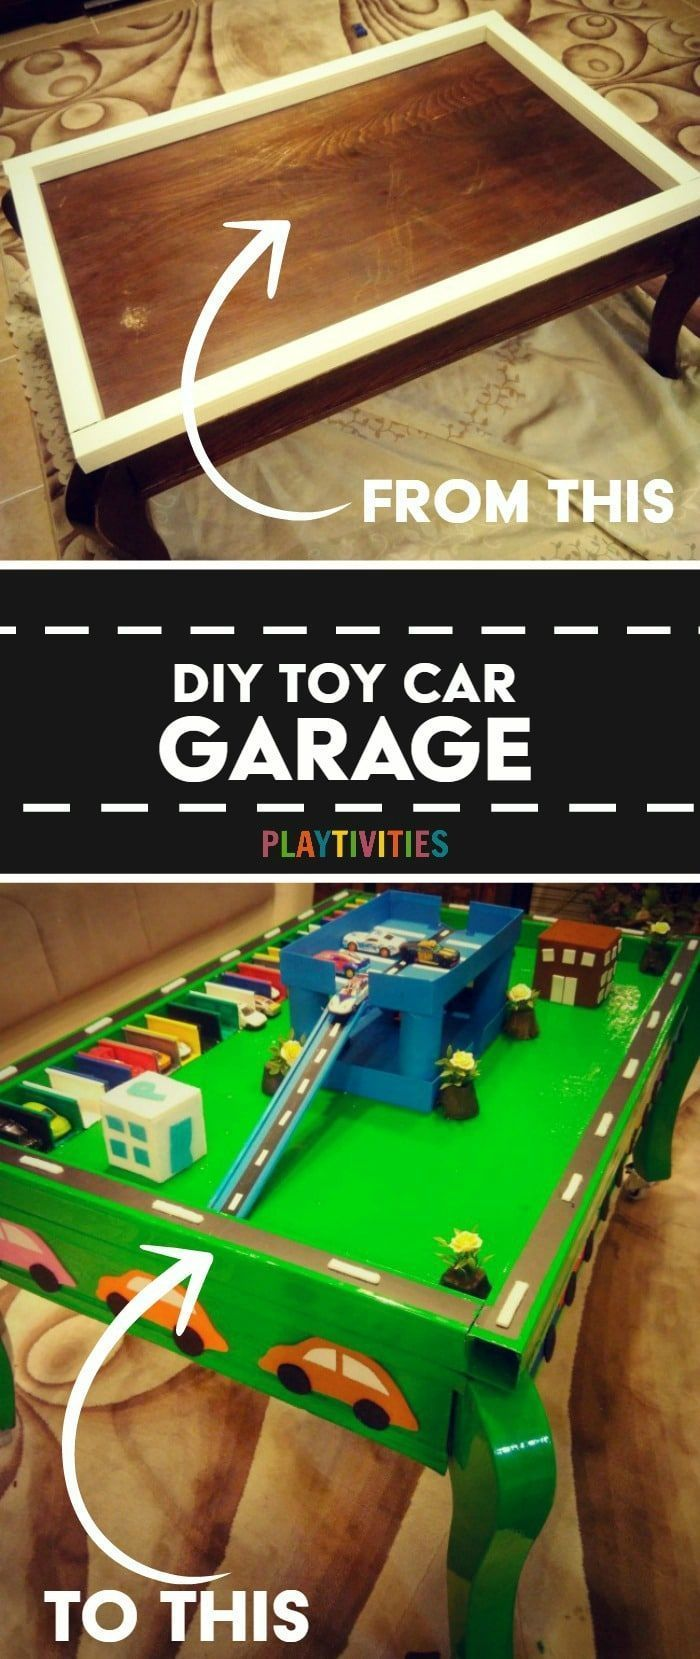 DIY TOY CAR GARAGE TABLE THAT COST ALMOST NOTHING TO MAKE My son is only interested in cars and only cars. So I racked my brain and came up with something I knew for sure he would be interested in.DIY Toy Car Garage was my next project. #DIYToys #IdeasForKids #DIYToyProject #CoolIdeasForKids #CraftActivities #FunFroKids #Parenting #DIYToyIdeas